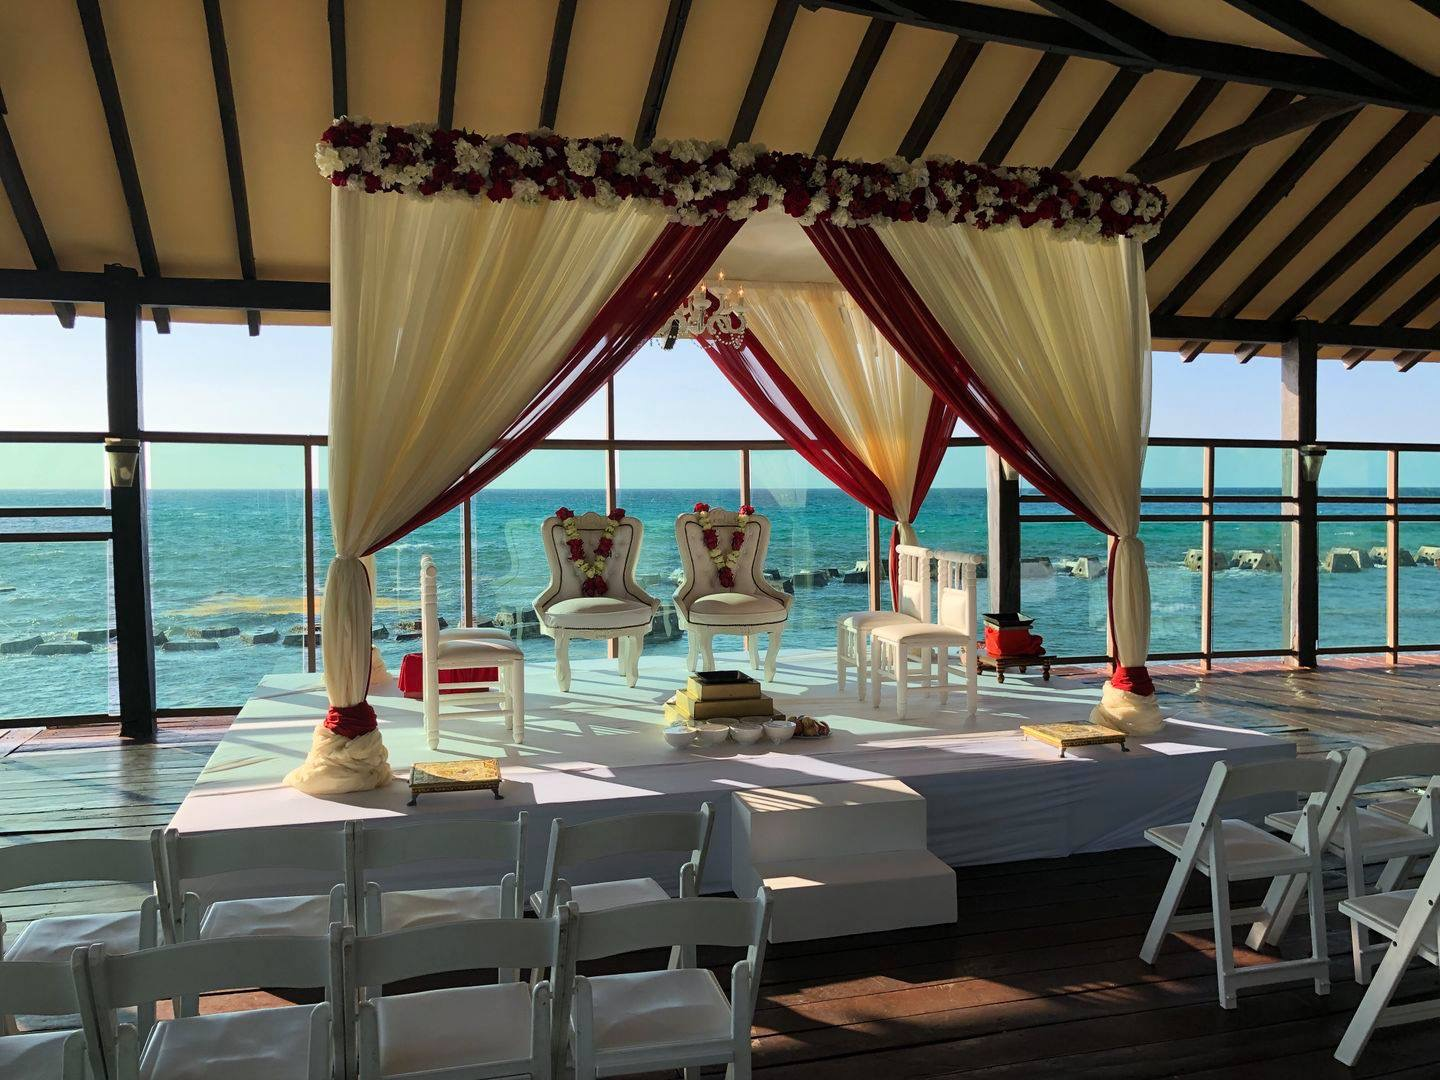 Pier venue for all inclusive wedding in riviera maya by latin asia one stop solution